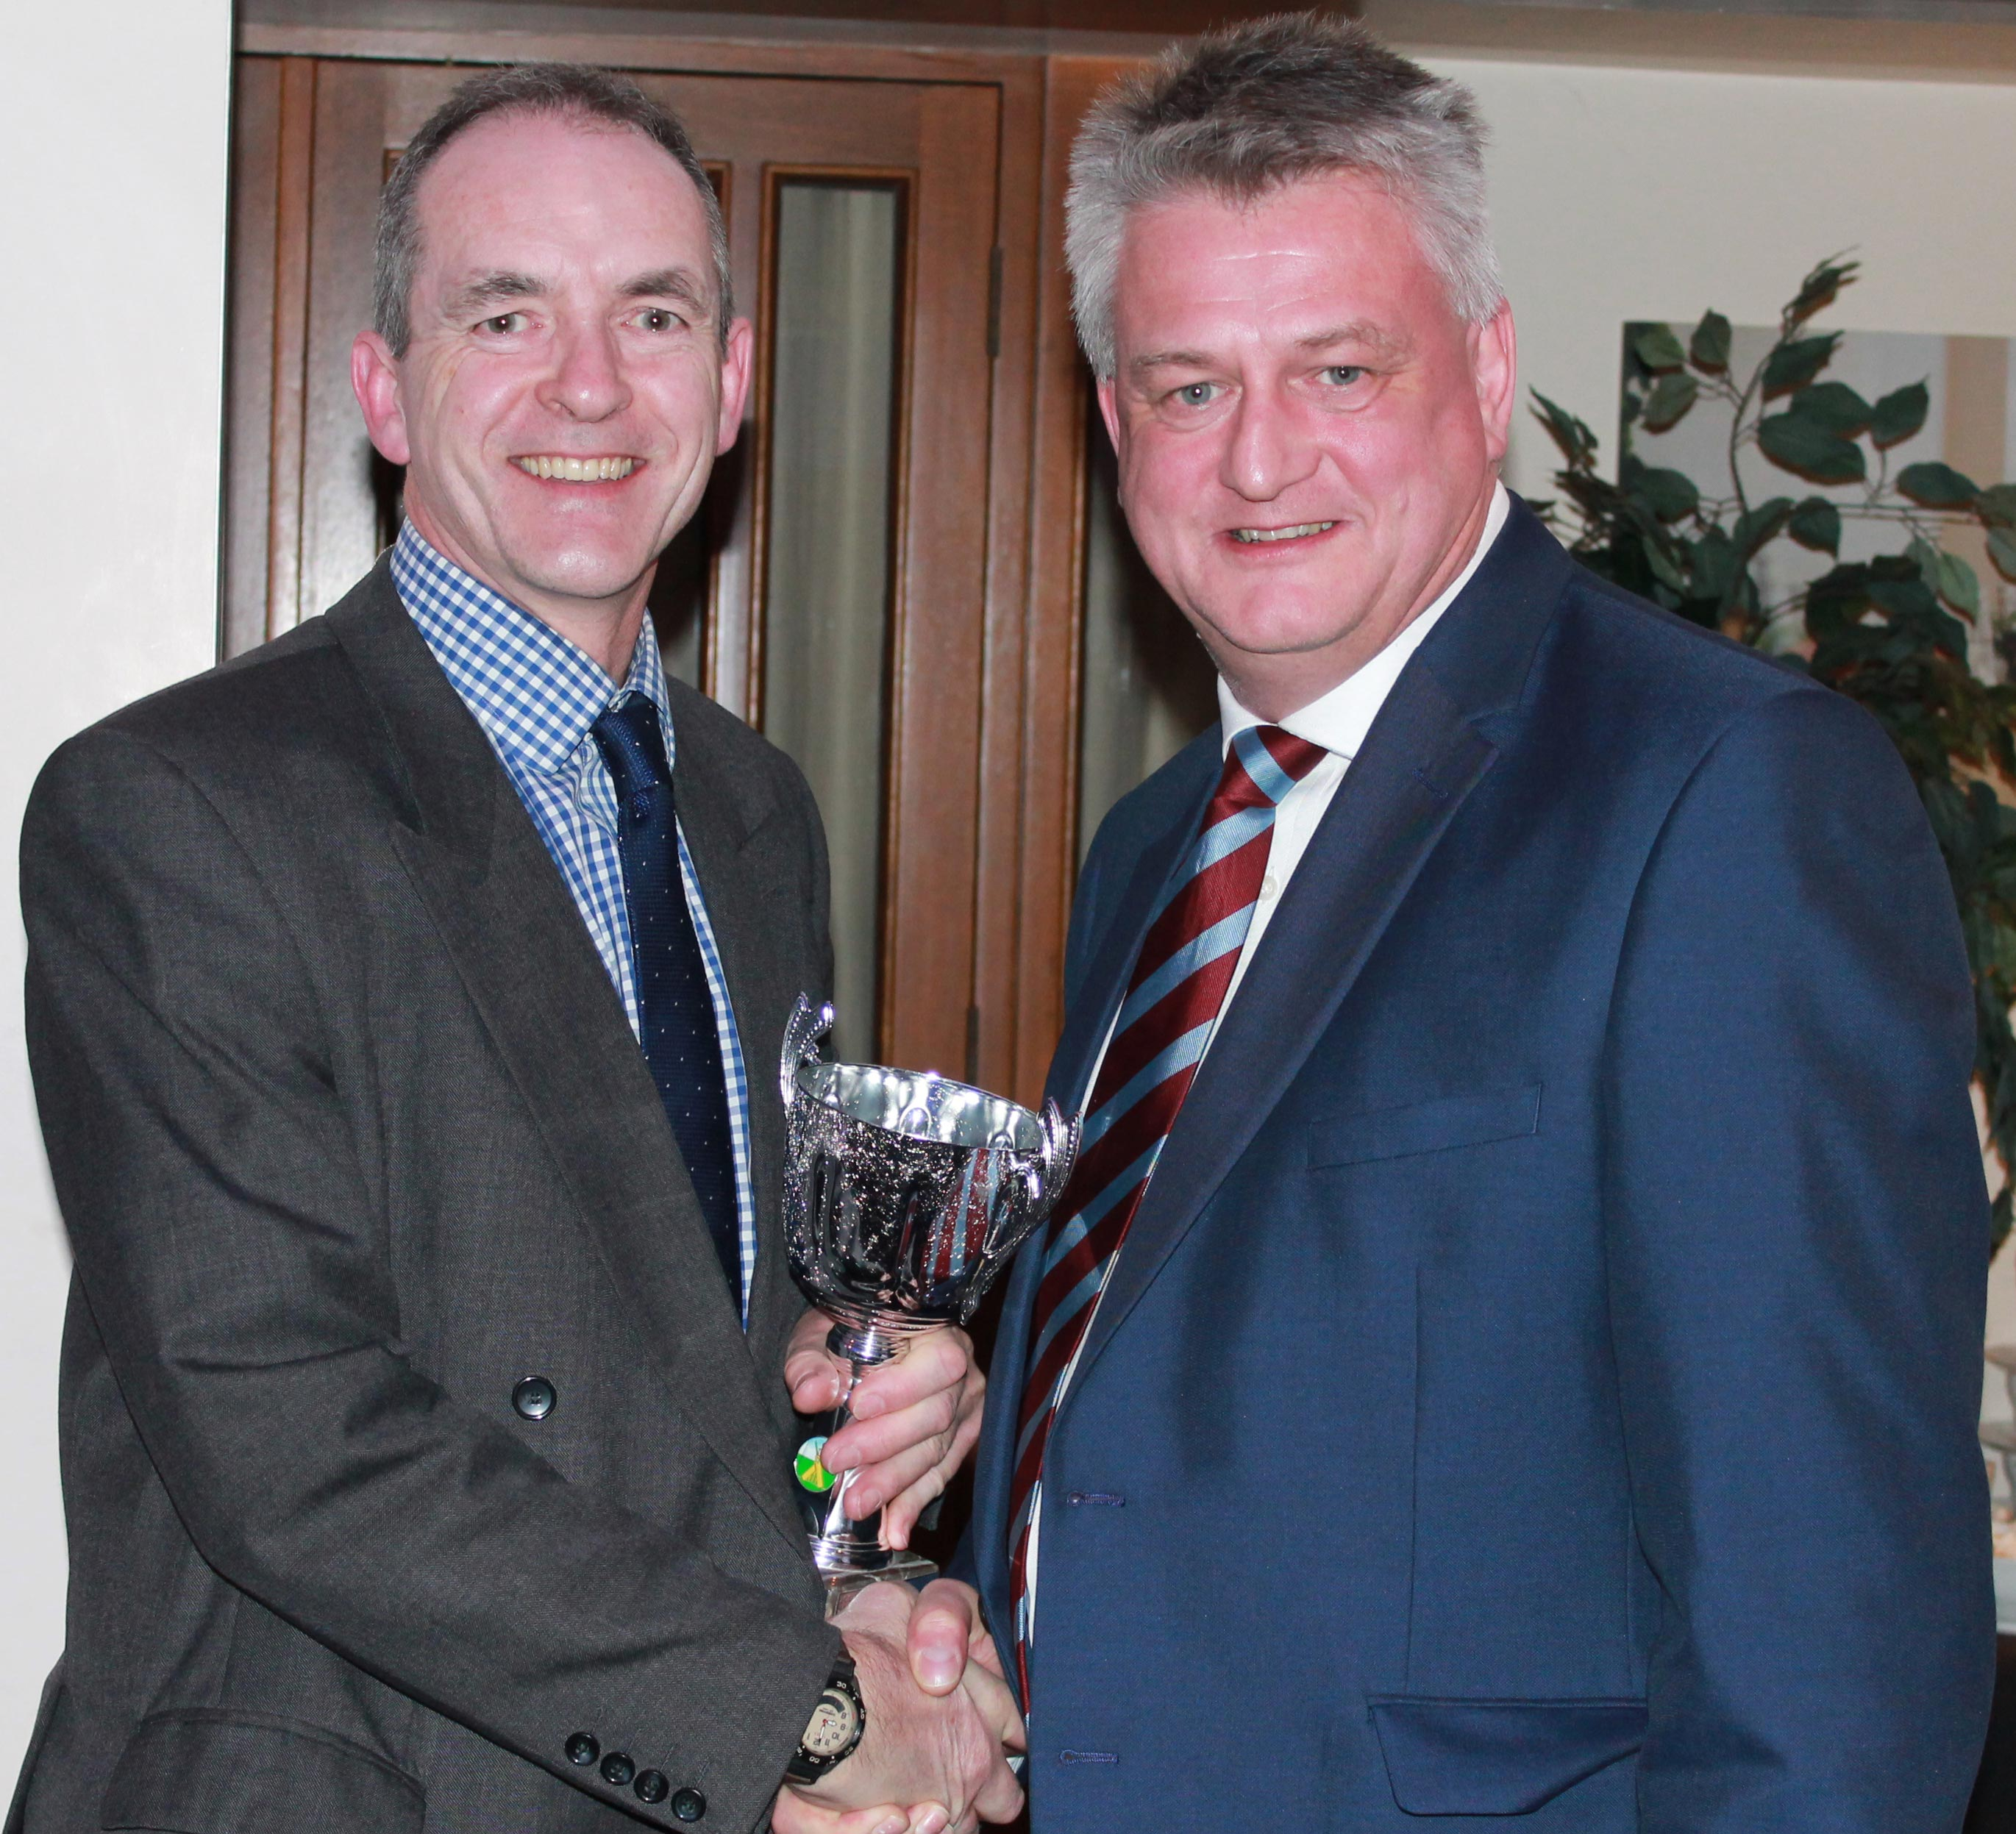 Stuart Bartram presents Tim Smith with the CEYMS Trophy for the Swardeston CEYMS player of the year. Tim was receiving the trophy on behalf of his son Eddie.